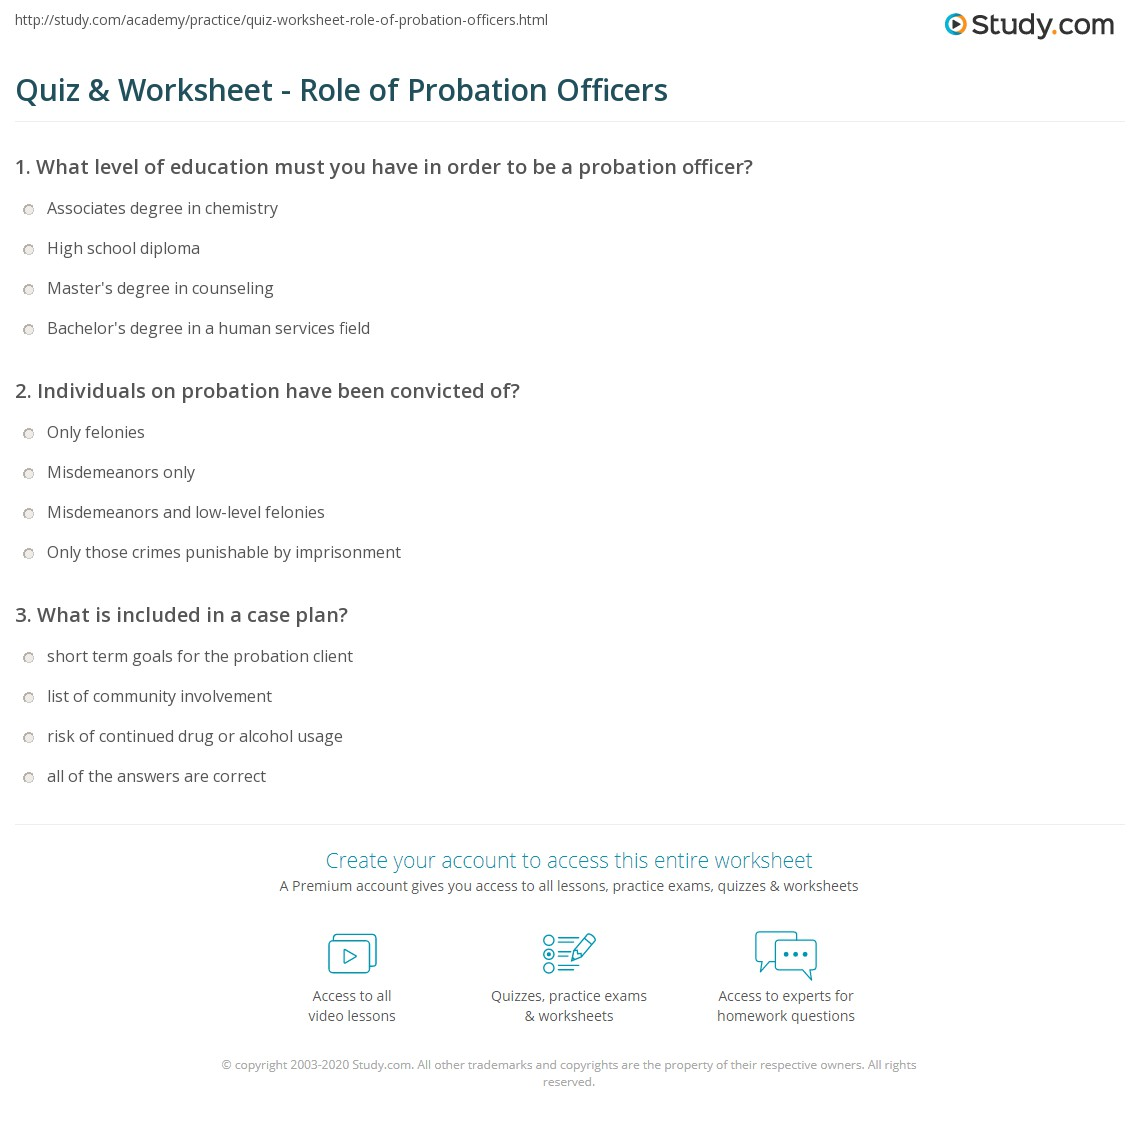 Quiz & Worksheet - Role of Probation Officers | Study.com